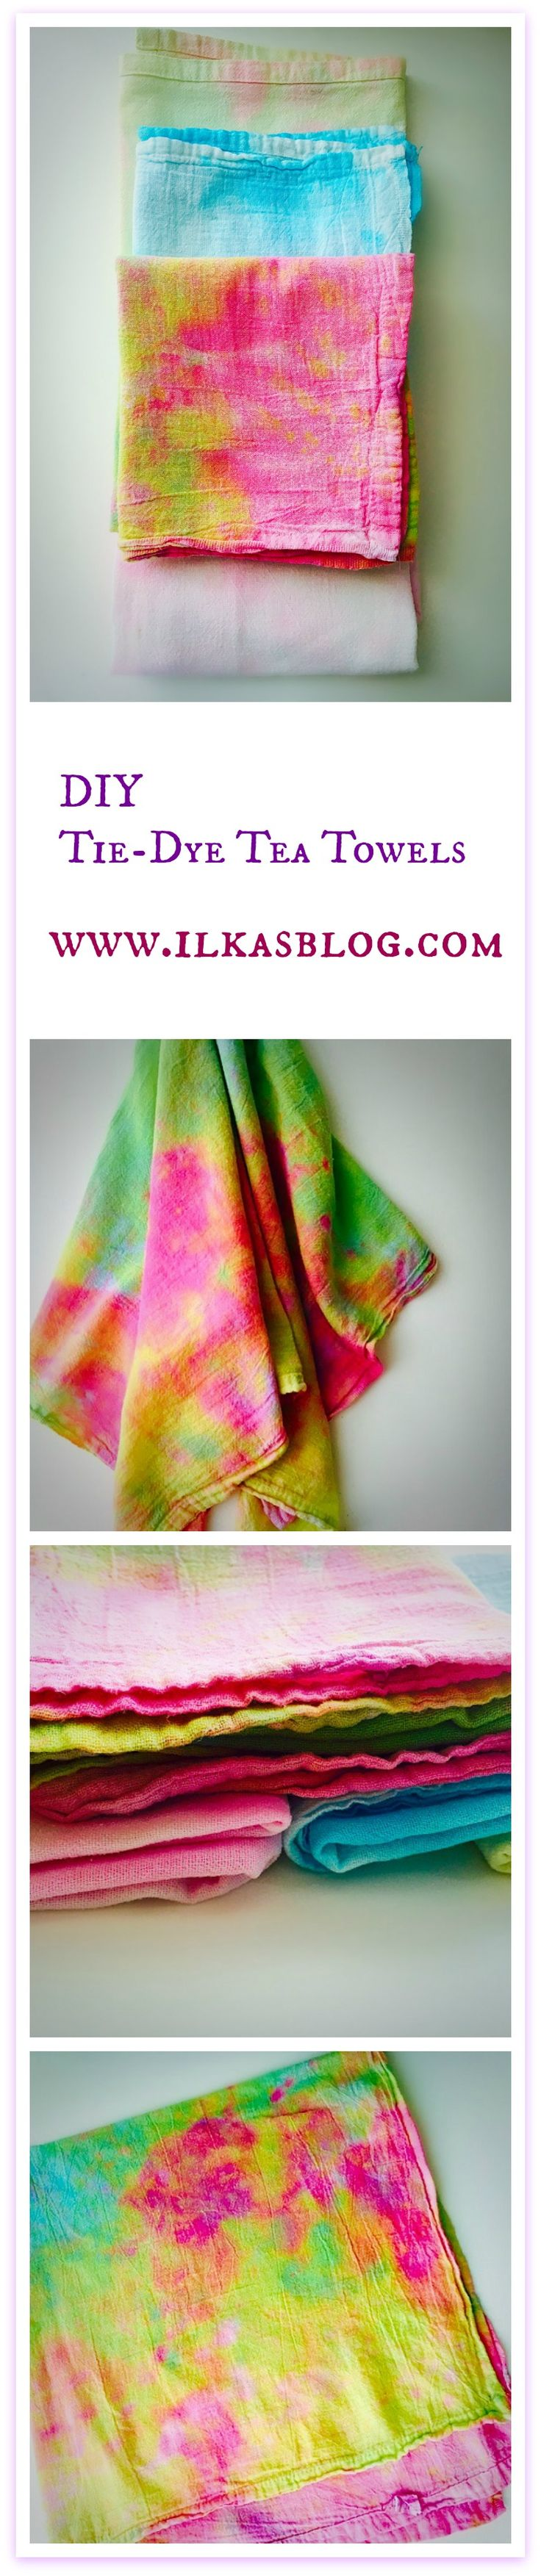 DIY Tie-Dye Tea Towels - a simple and easy fun and creative craft projects using…